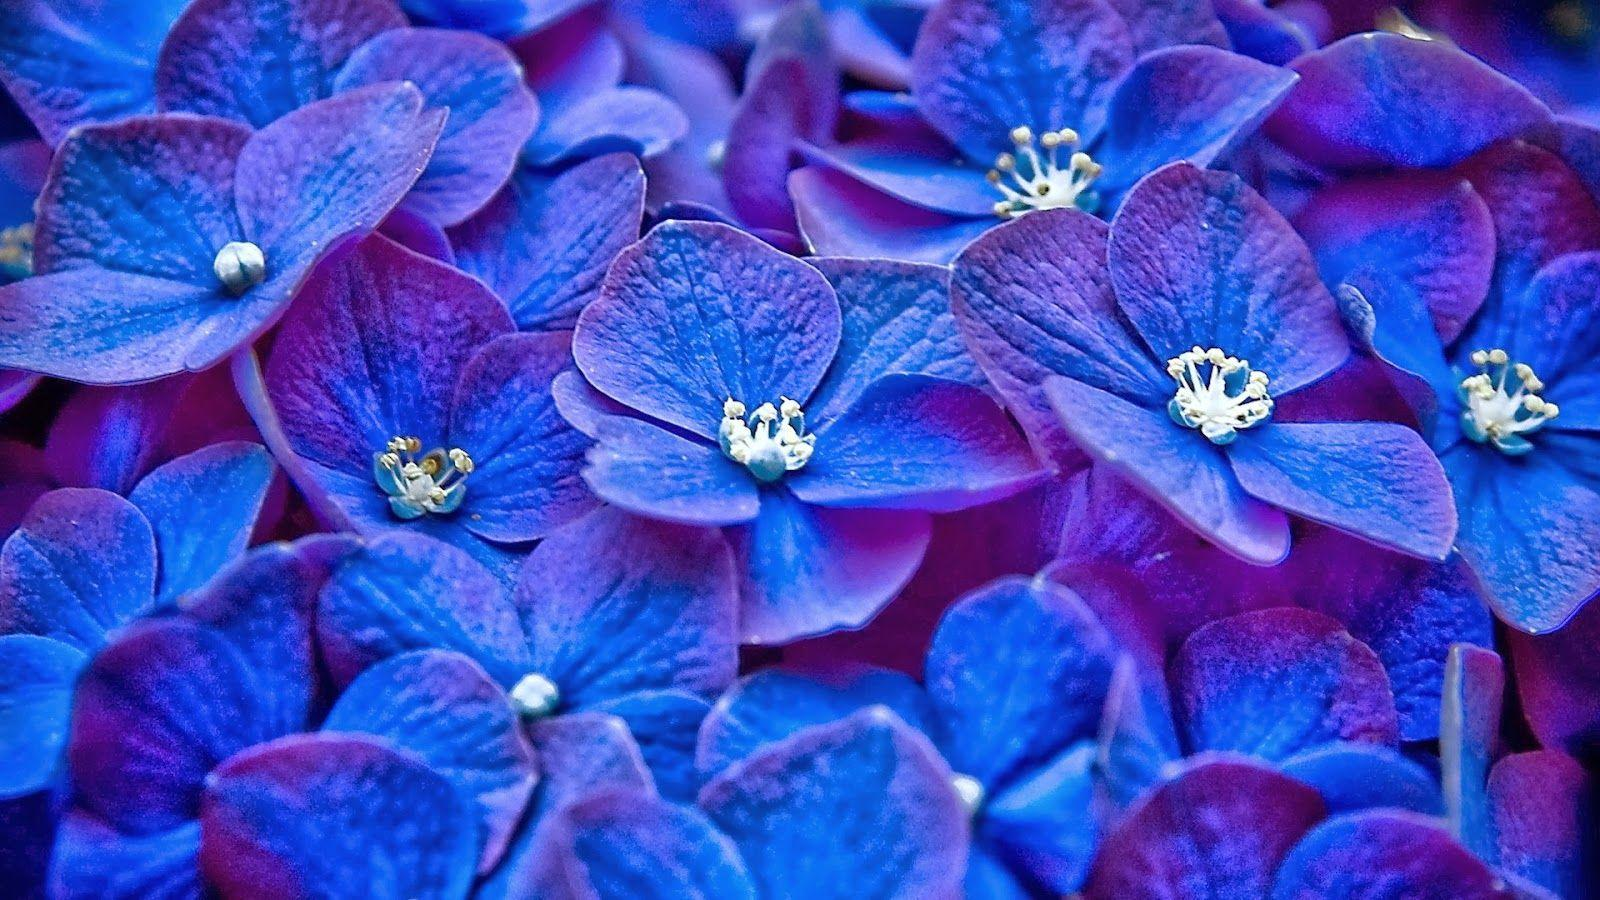 Blue Flowers Wallpapers - Wallpaper Cave